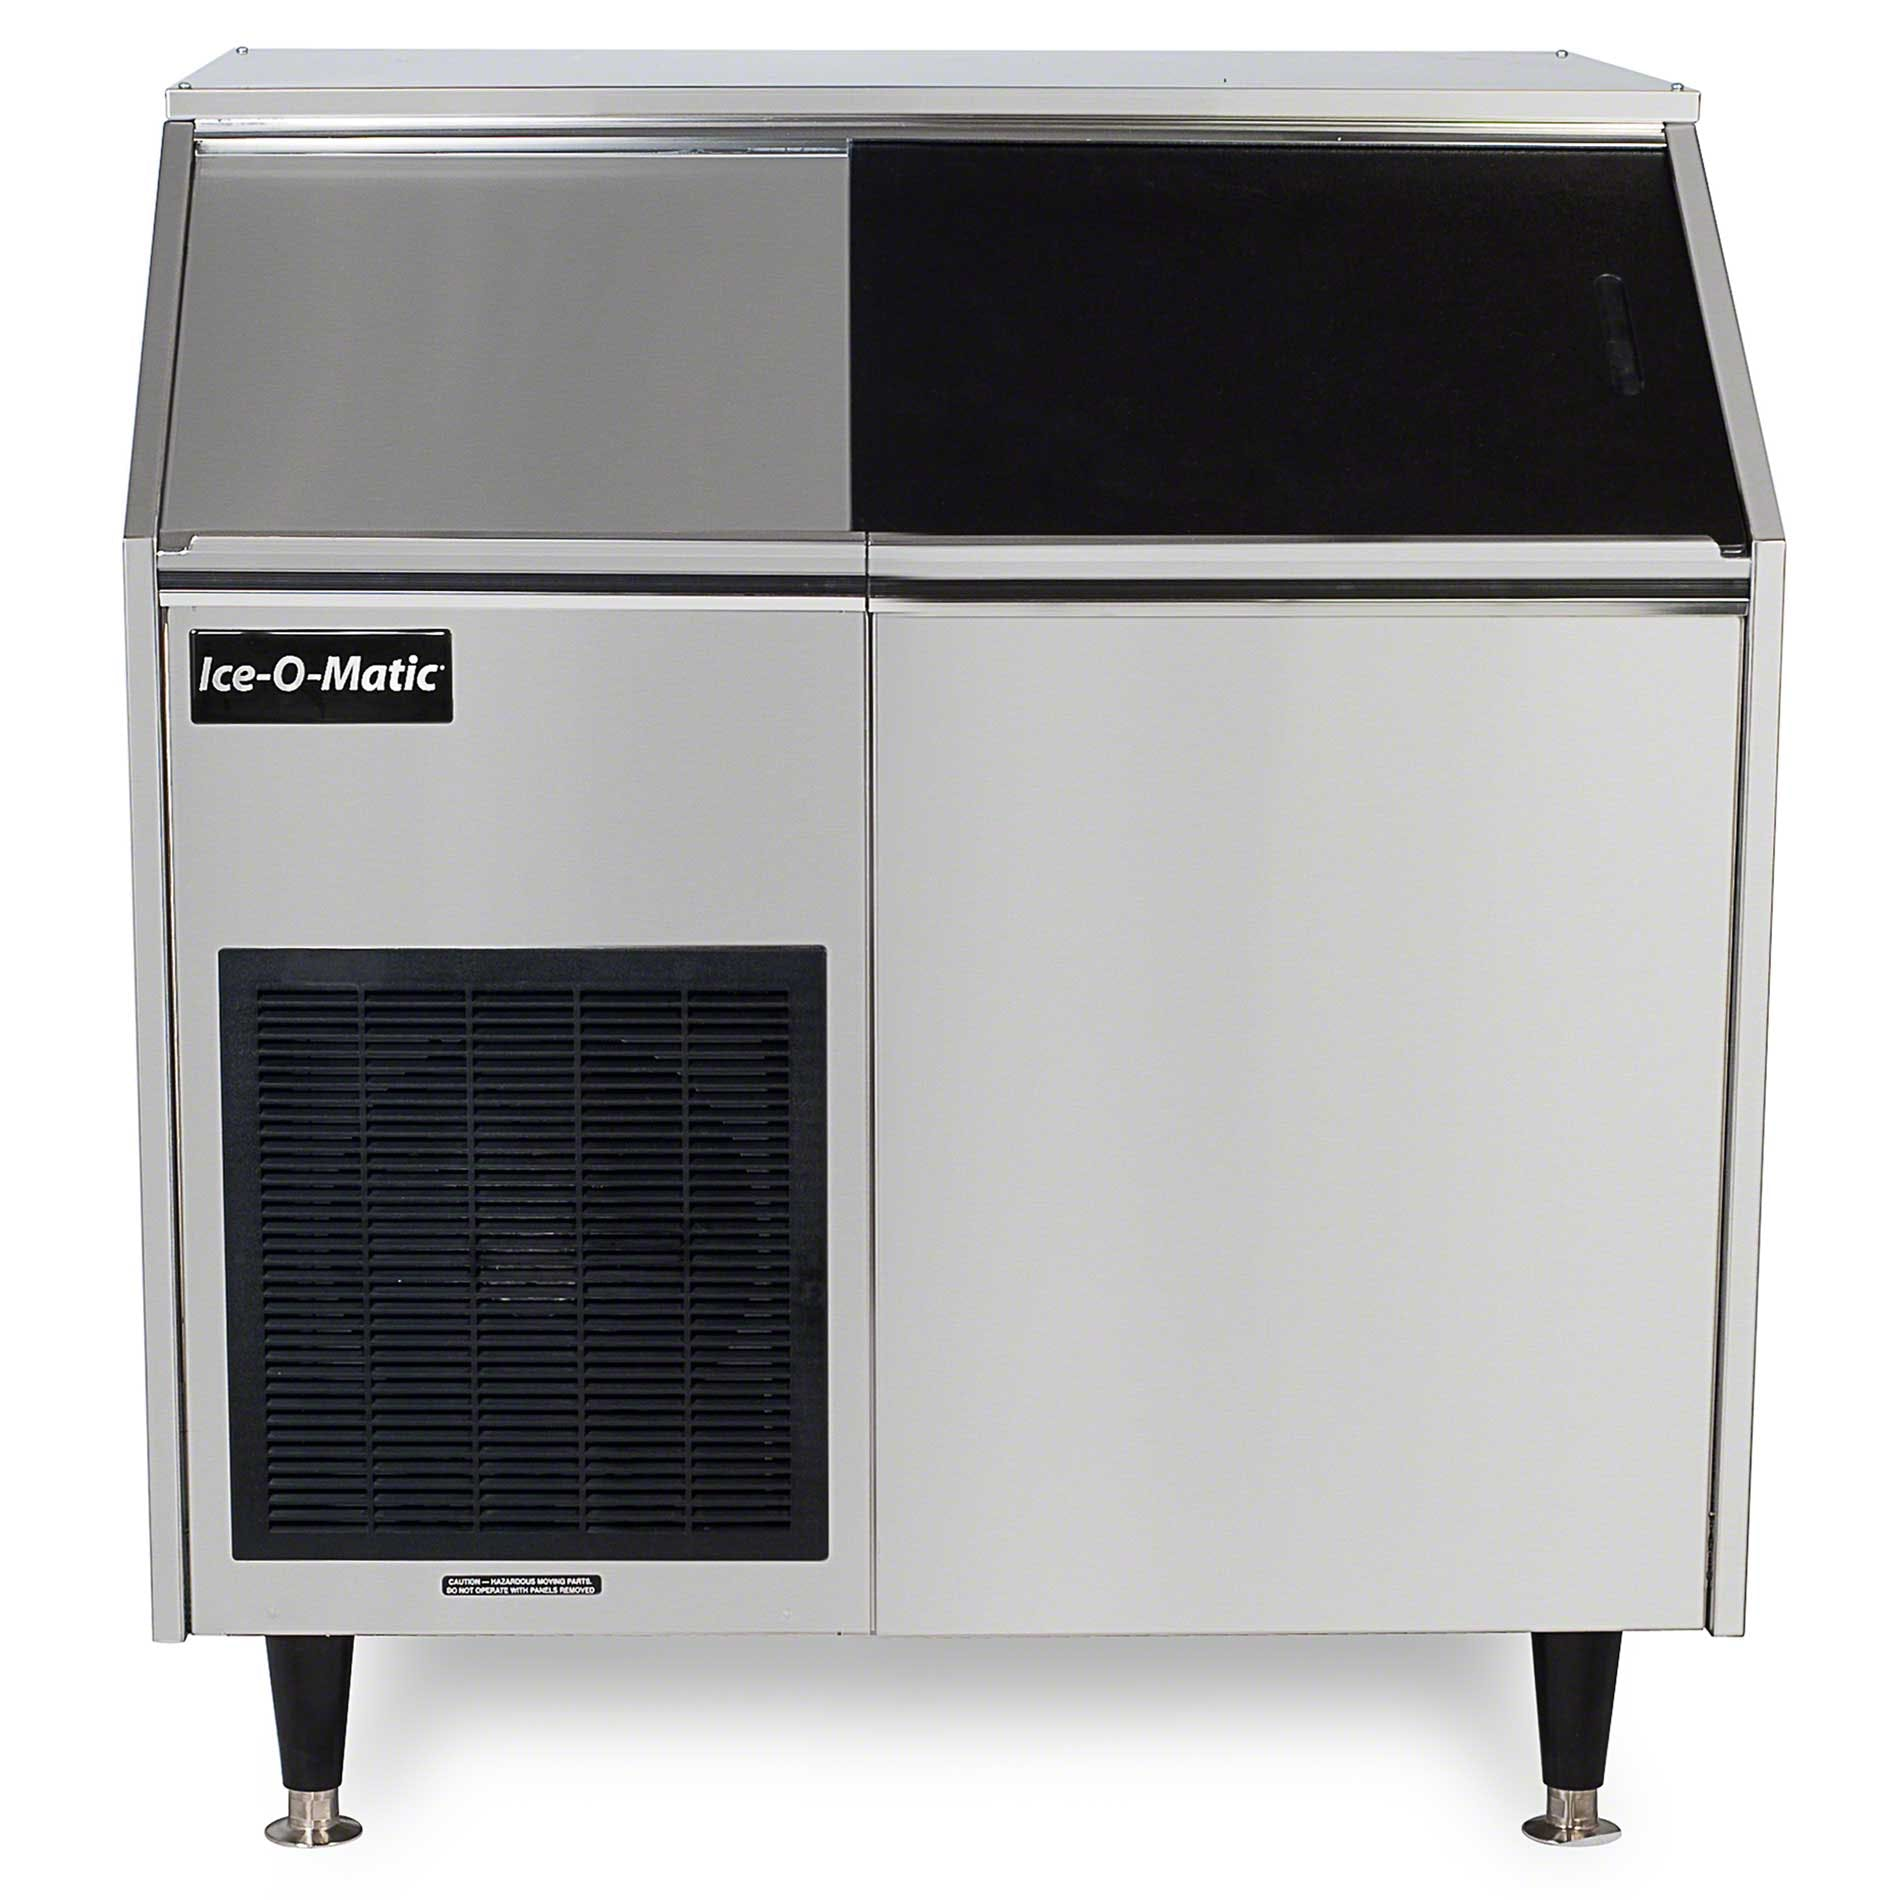 Ice-O-Matic - EF450A38S 472 lb Self-Contained Flake Ice Machine - sold by Food Service Warehouse